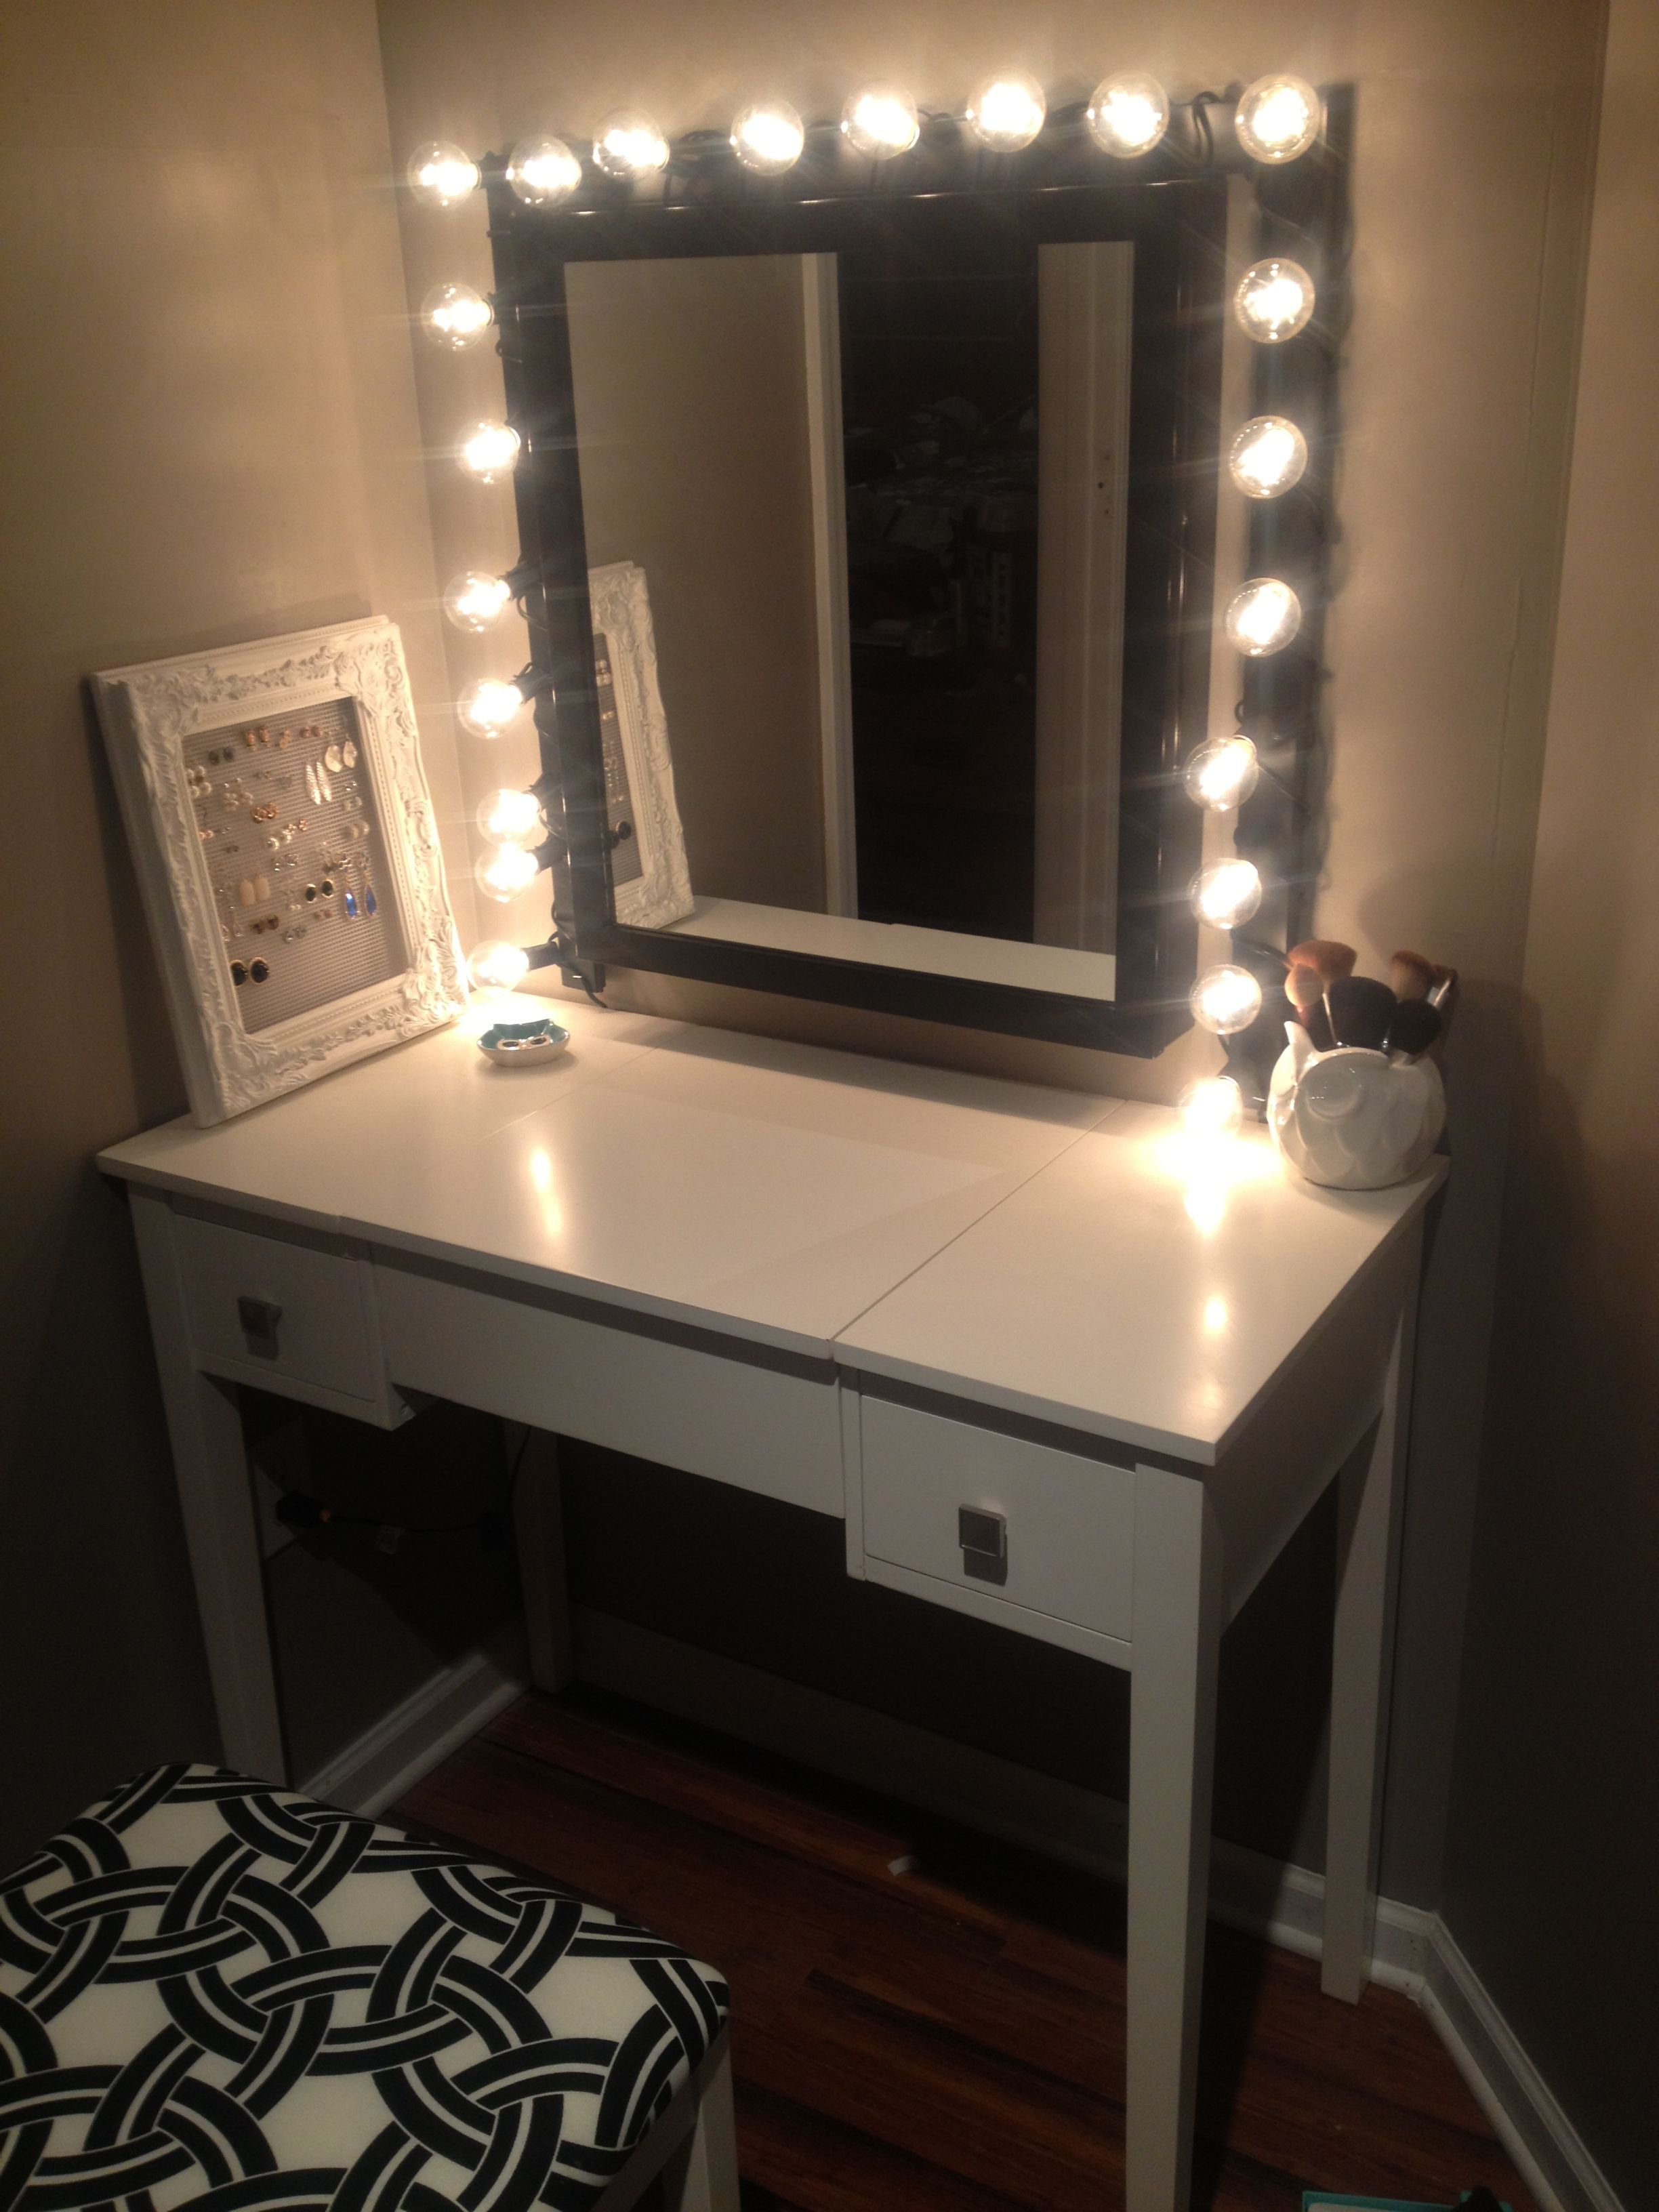 Vanity Makeup Table From Target Makeup Vanity Table Ikea Makeup Vanities With Drawers Makeup Vanity Table And Bench M Room Inspiration Glam Room Room Decor